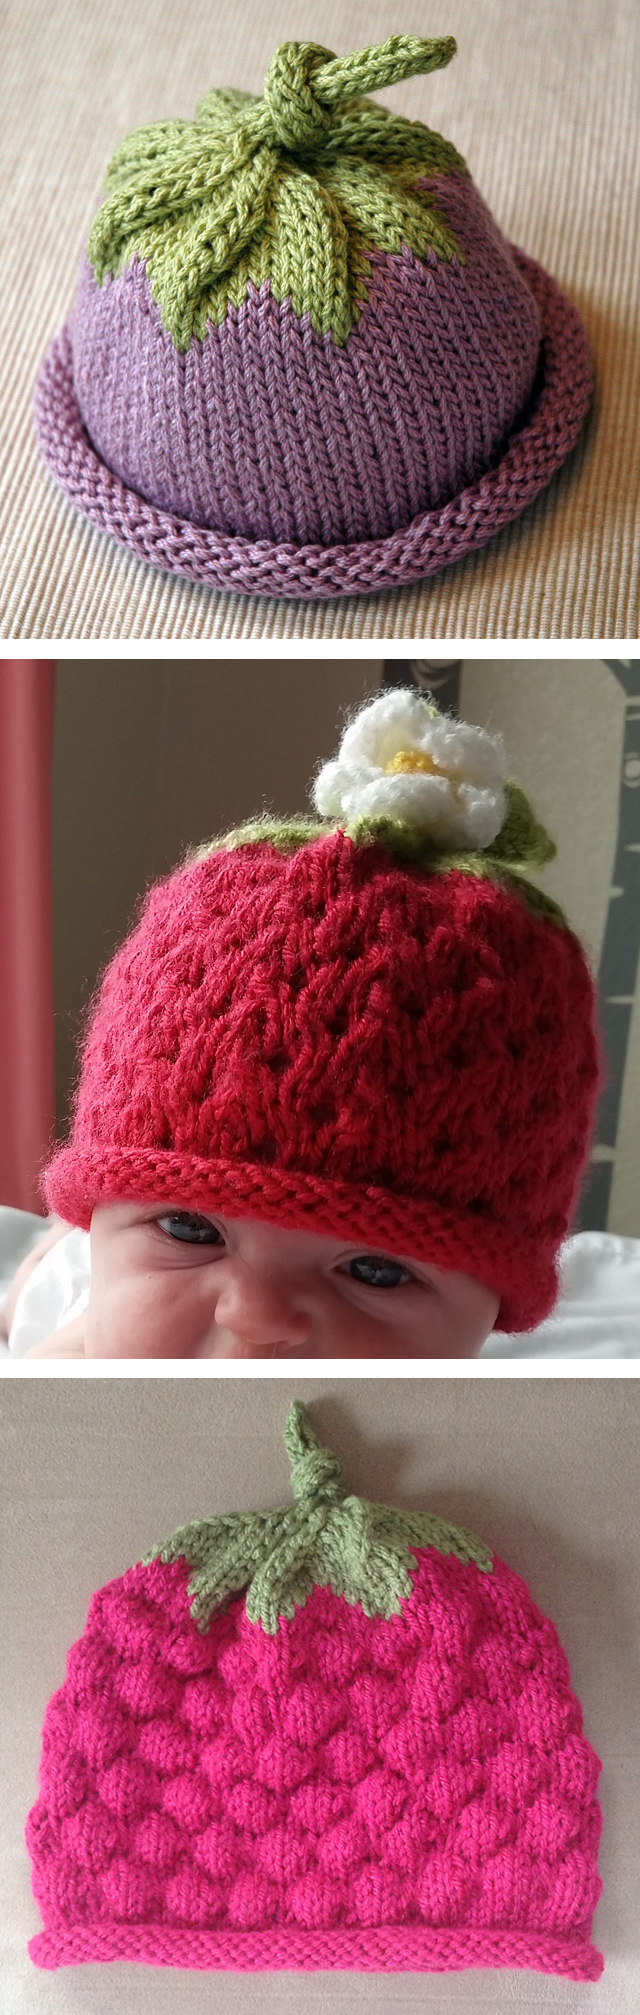 Baby Beanie Hat Knitting Pattern Fruit Knitting Patterns In The Loop Knitting